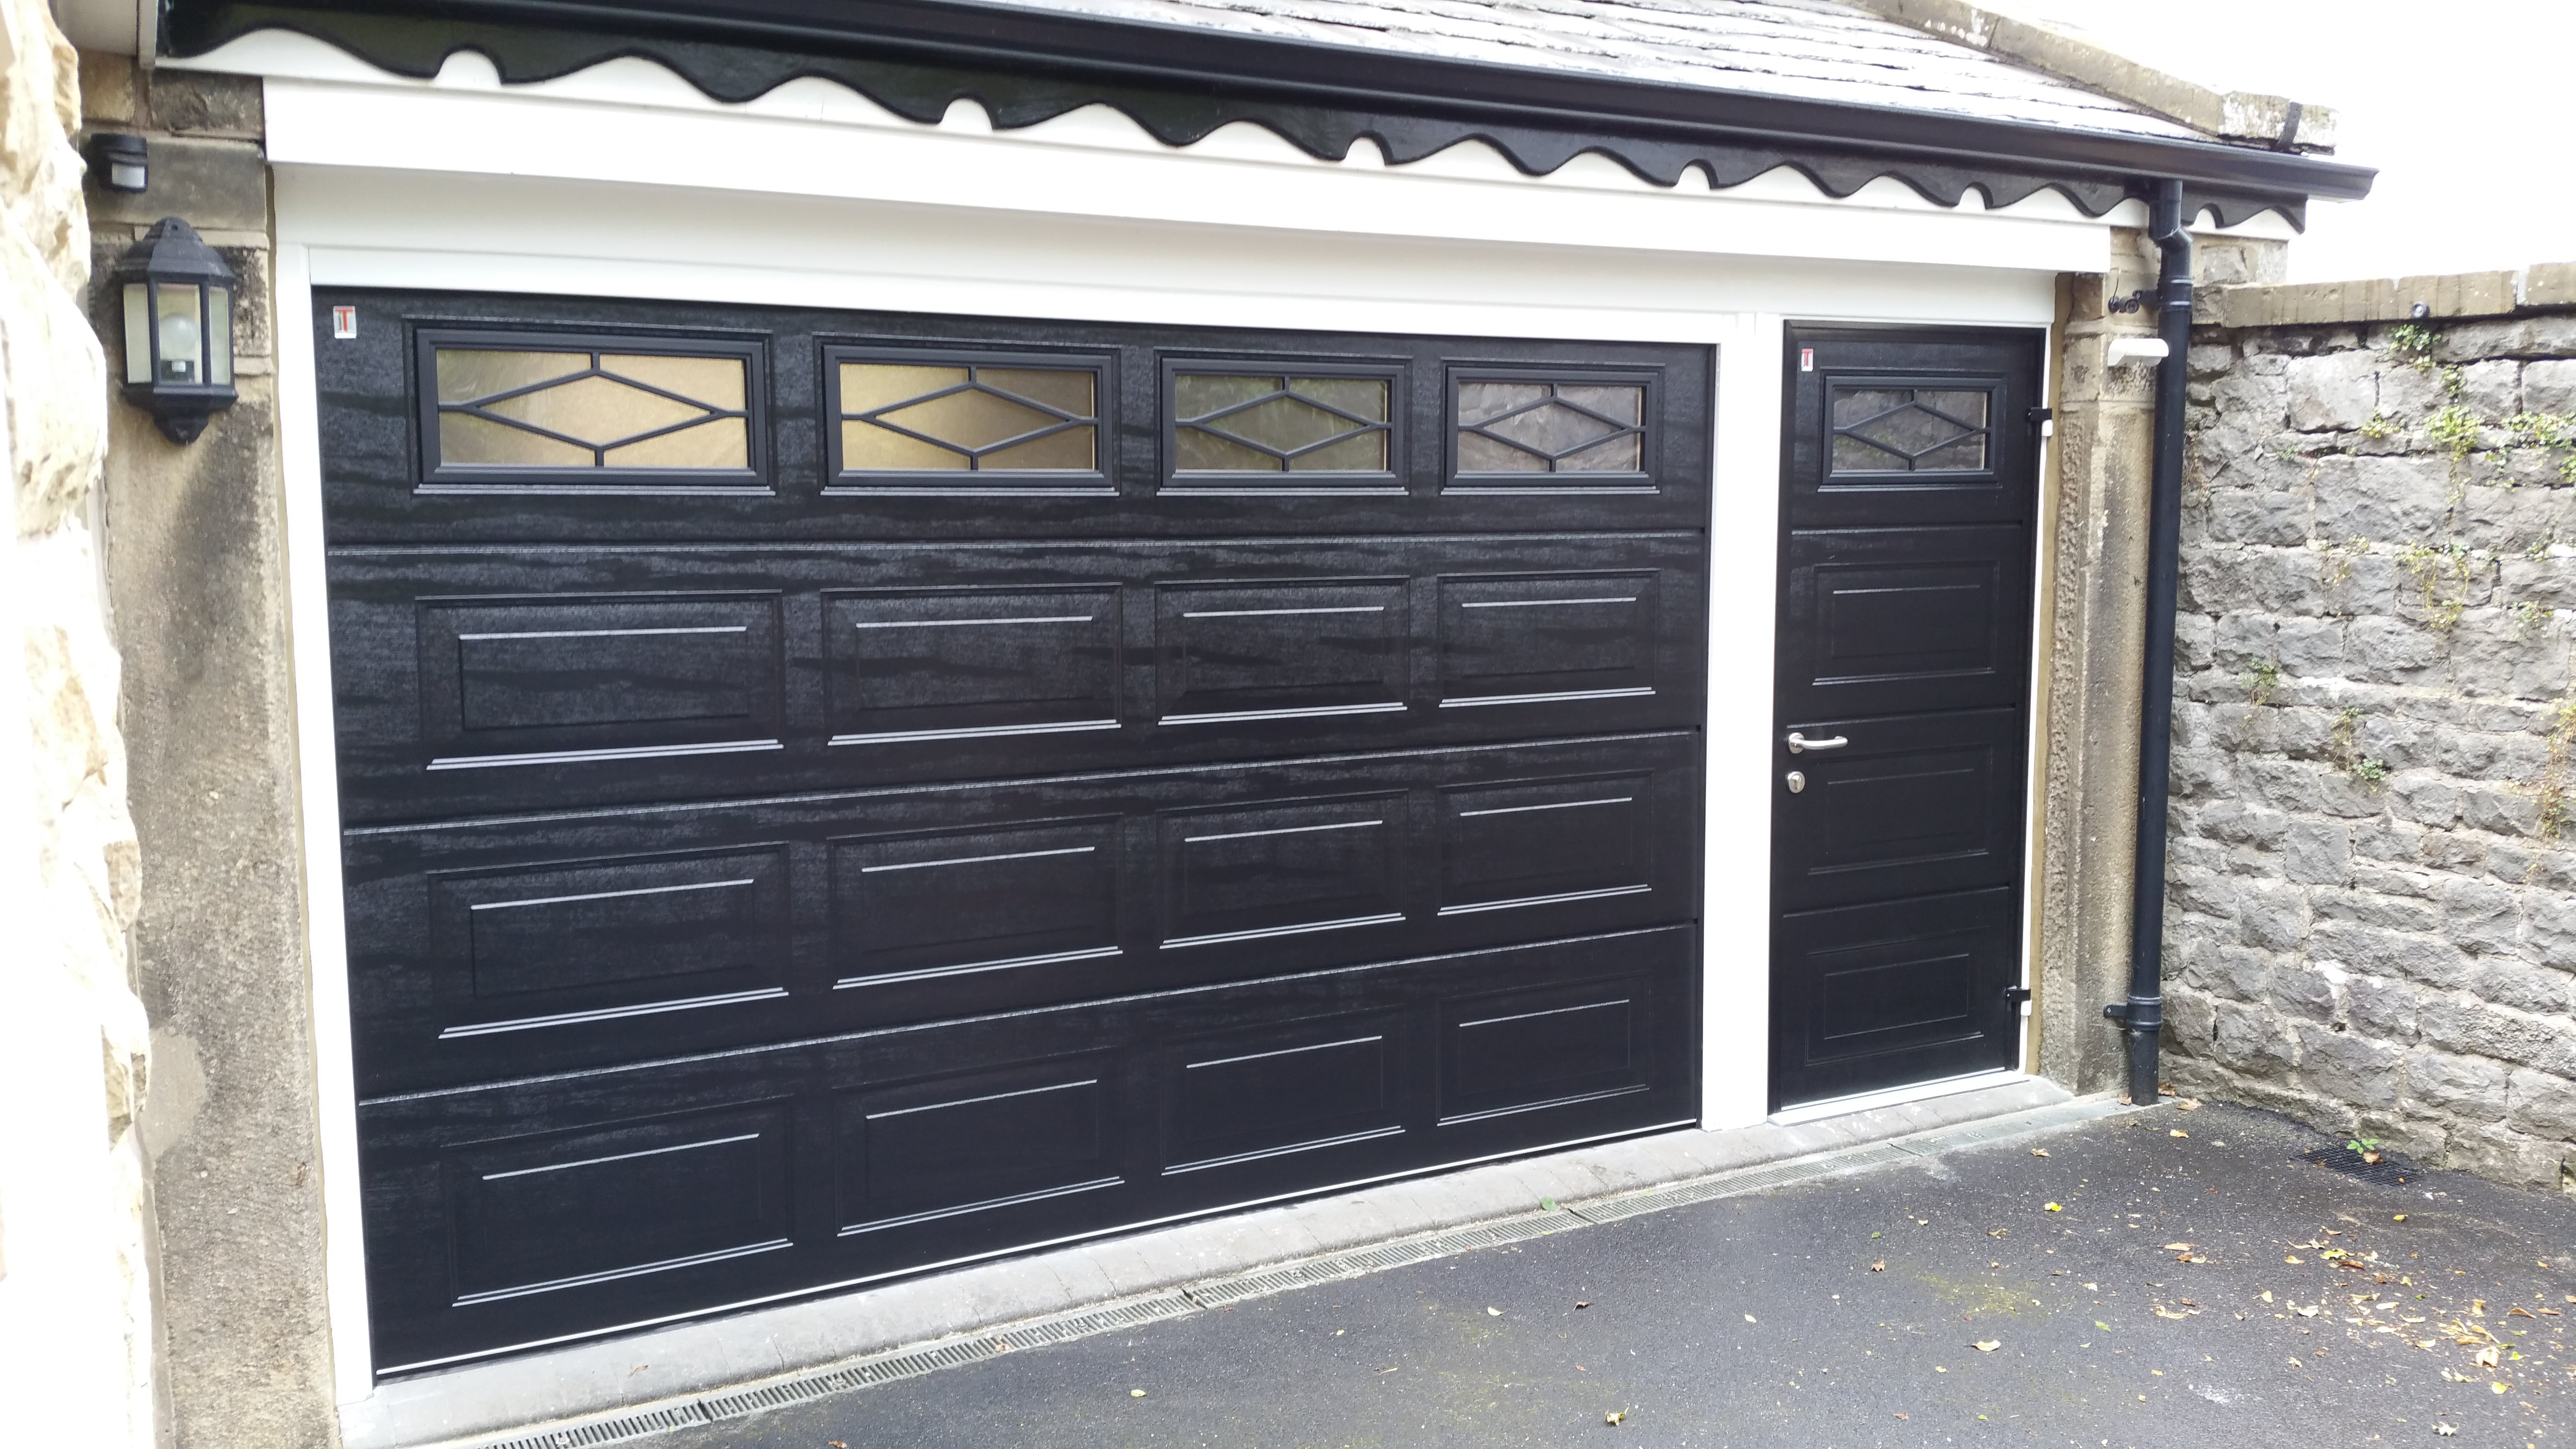 Garage doors sectional roller retractable canopy earby door window shutters and security systems from domestic roller shutters rubansaba